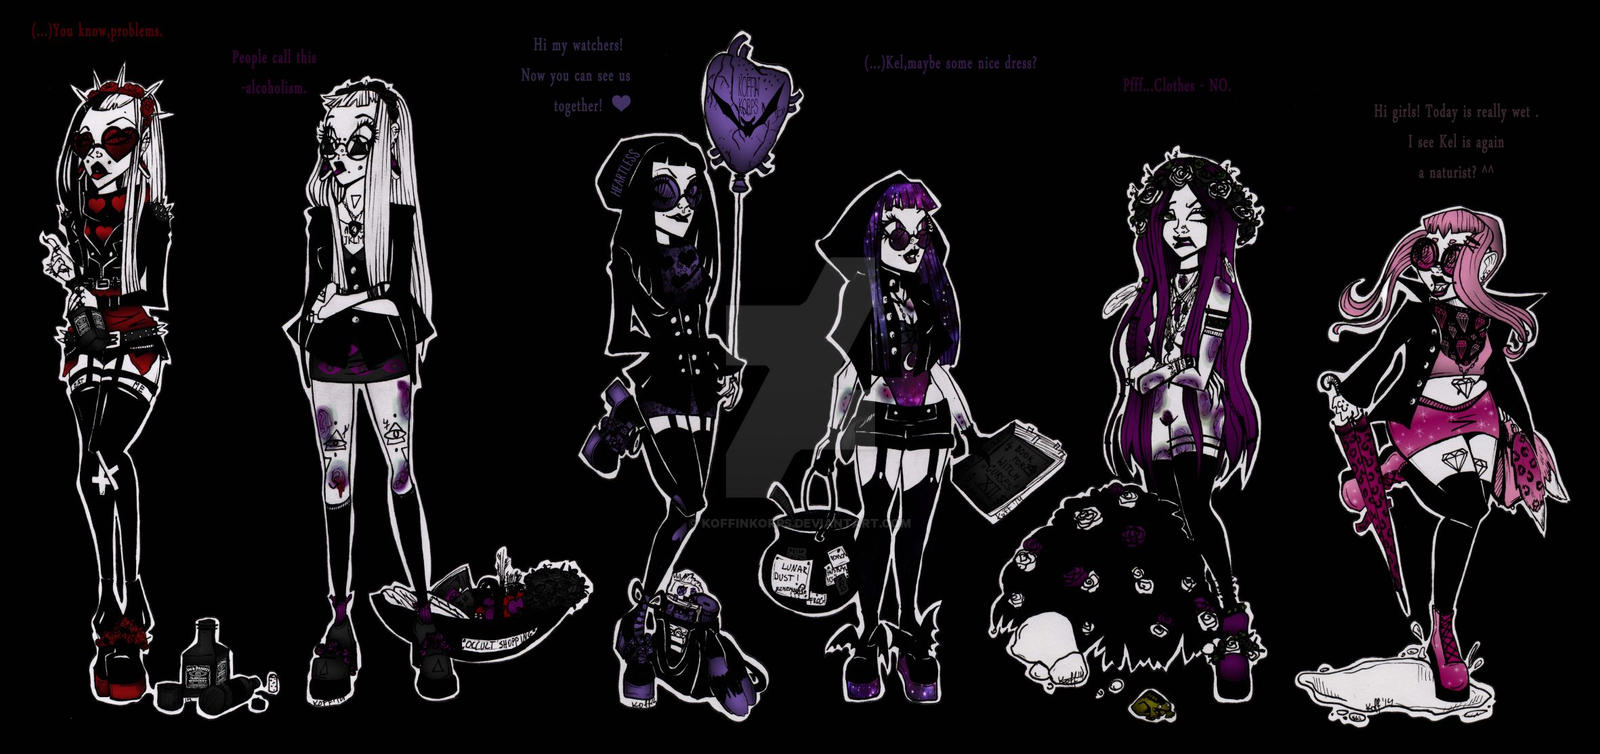 we are monster girls from freaky world by koffinkorps on